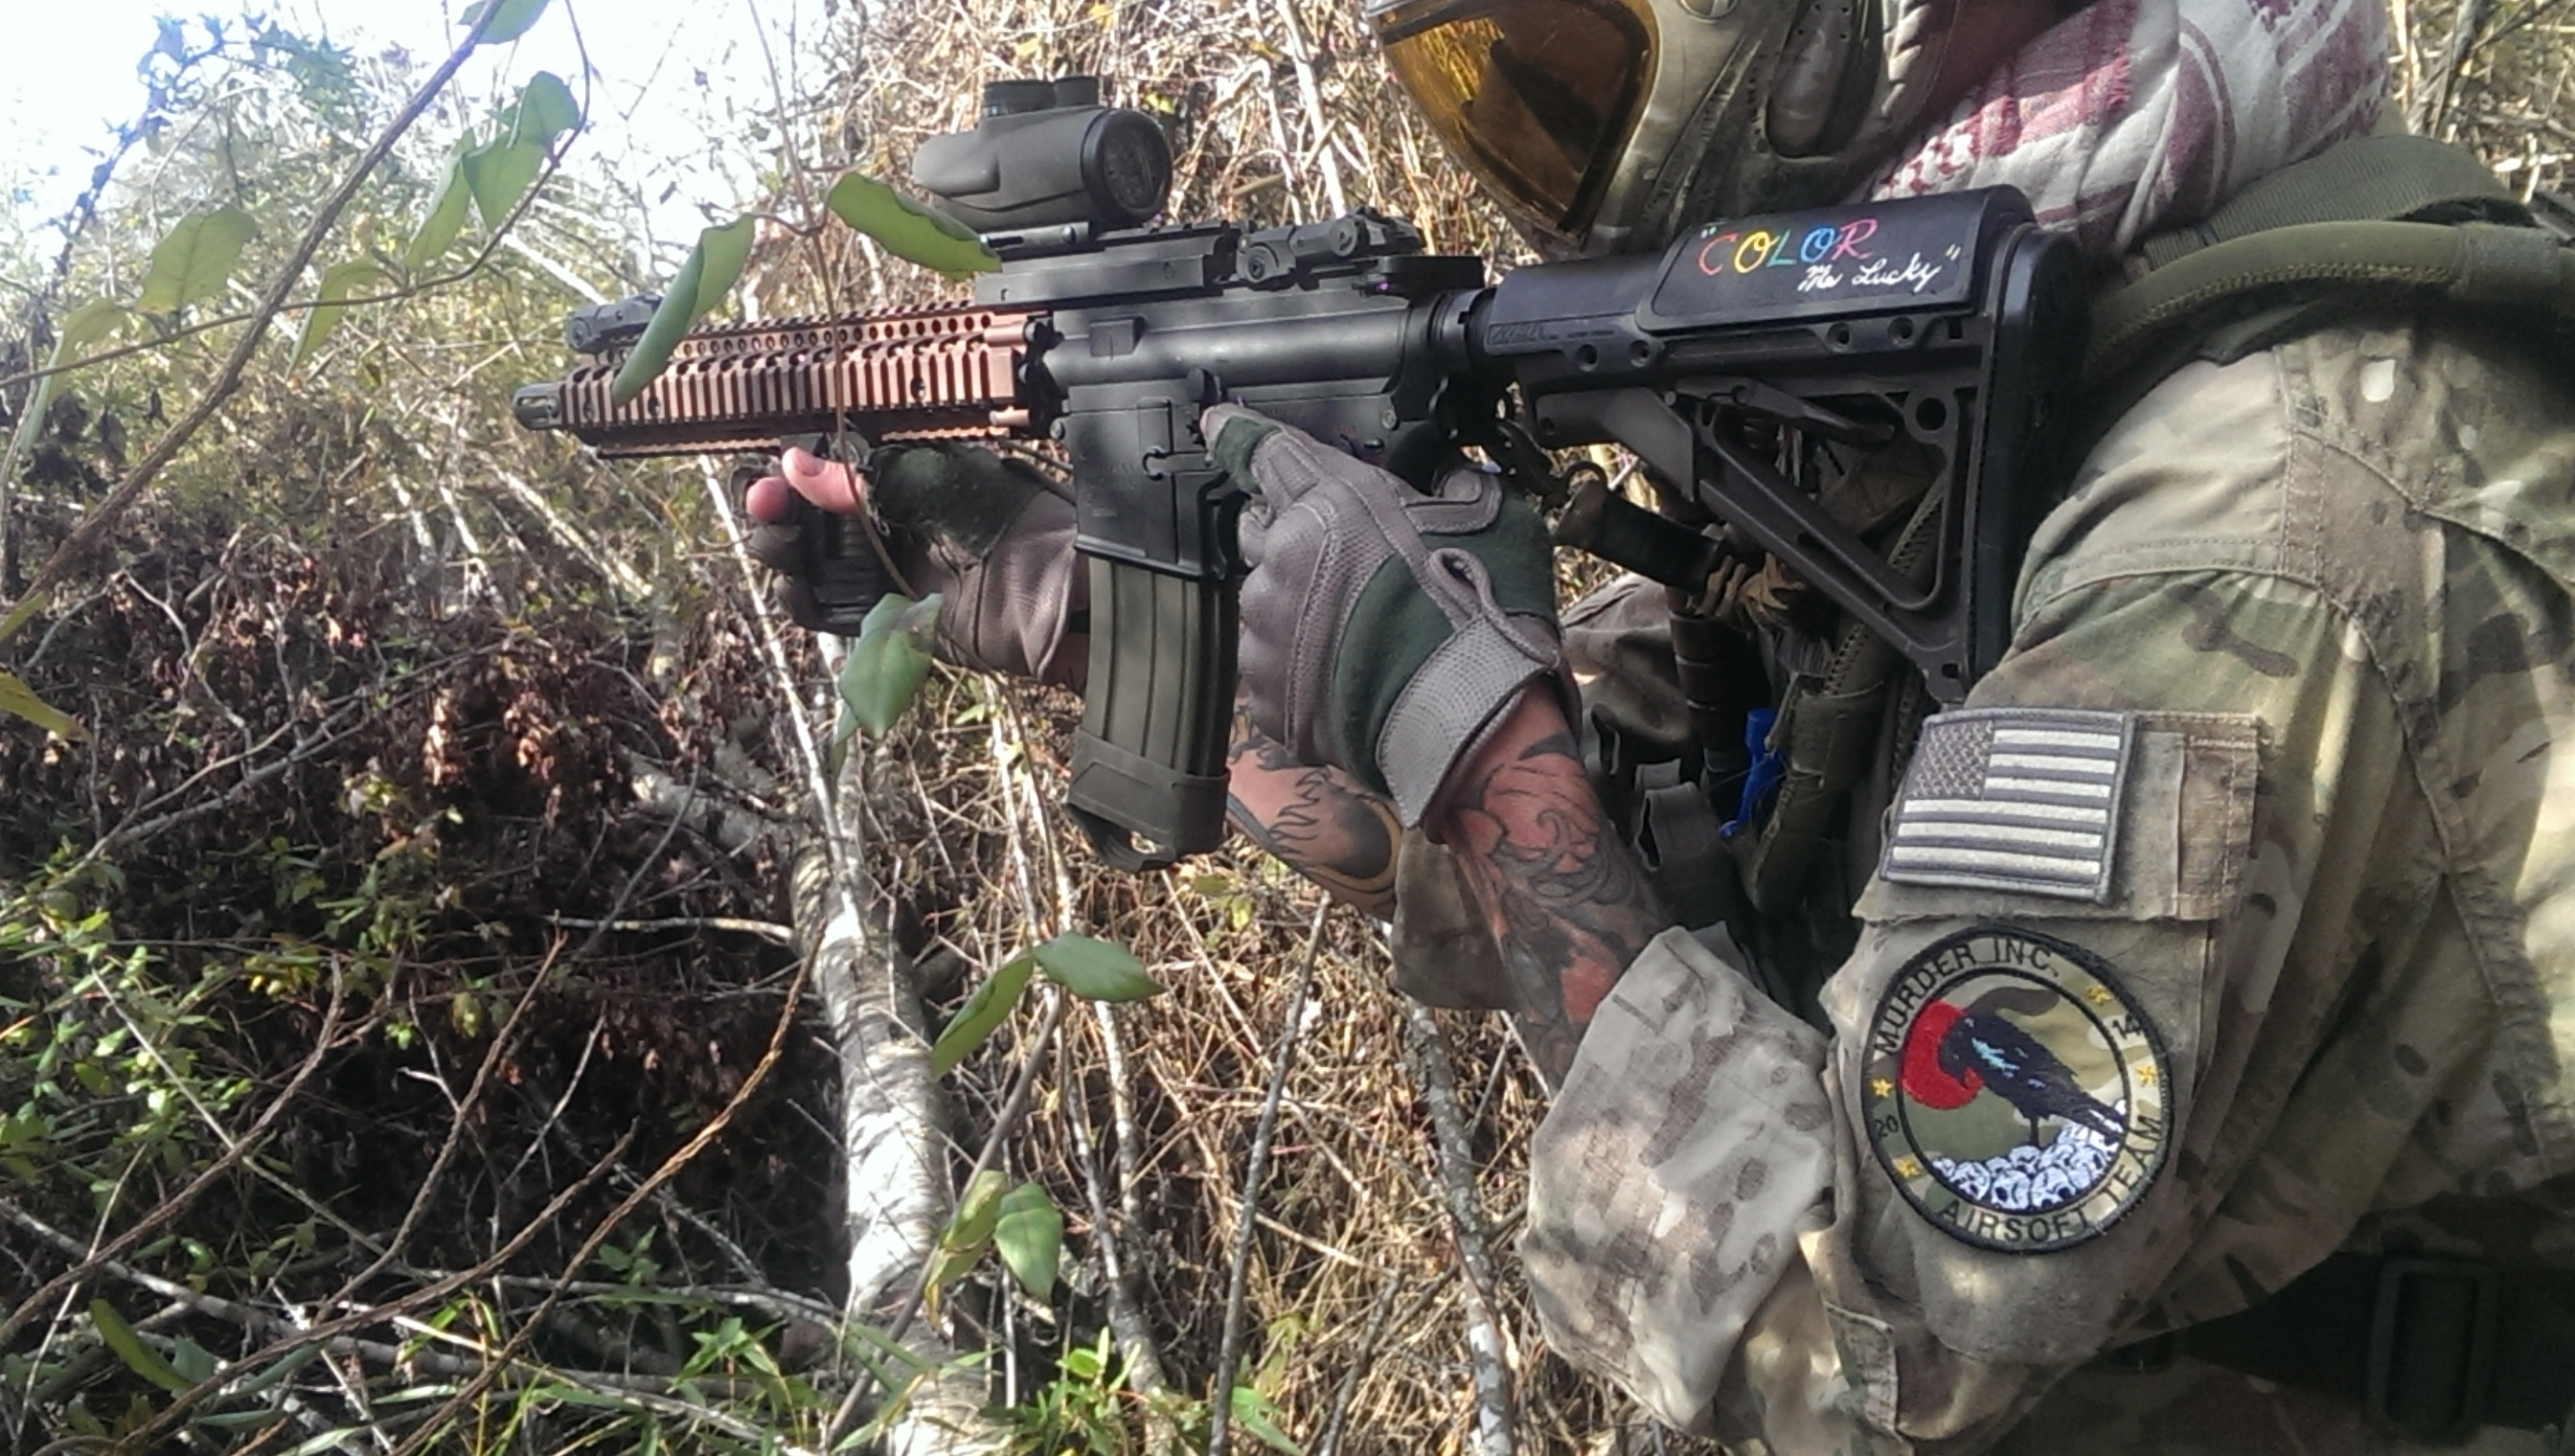 Murder Inc. Airsoft Team custom patches in action